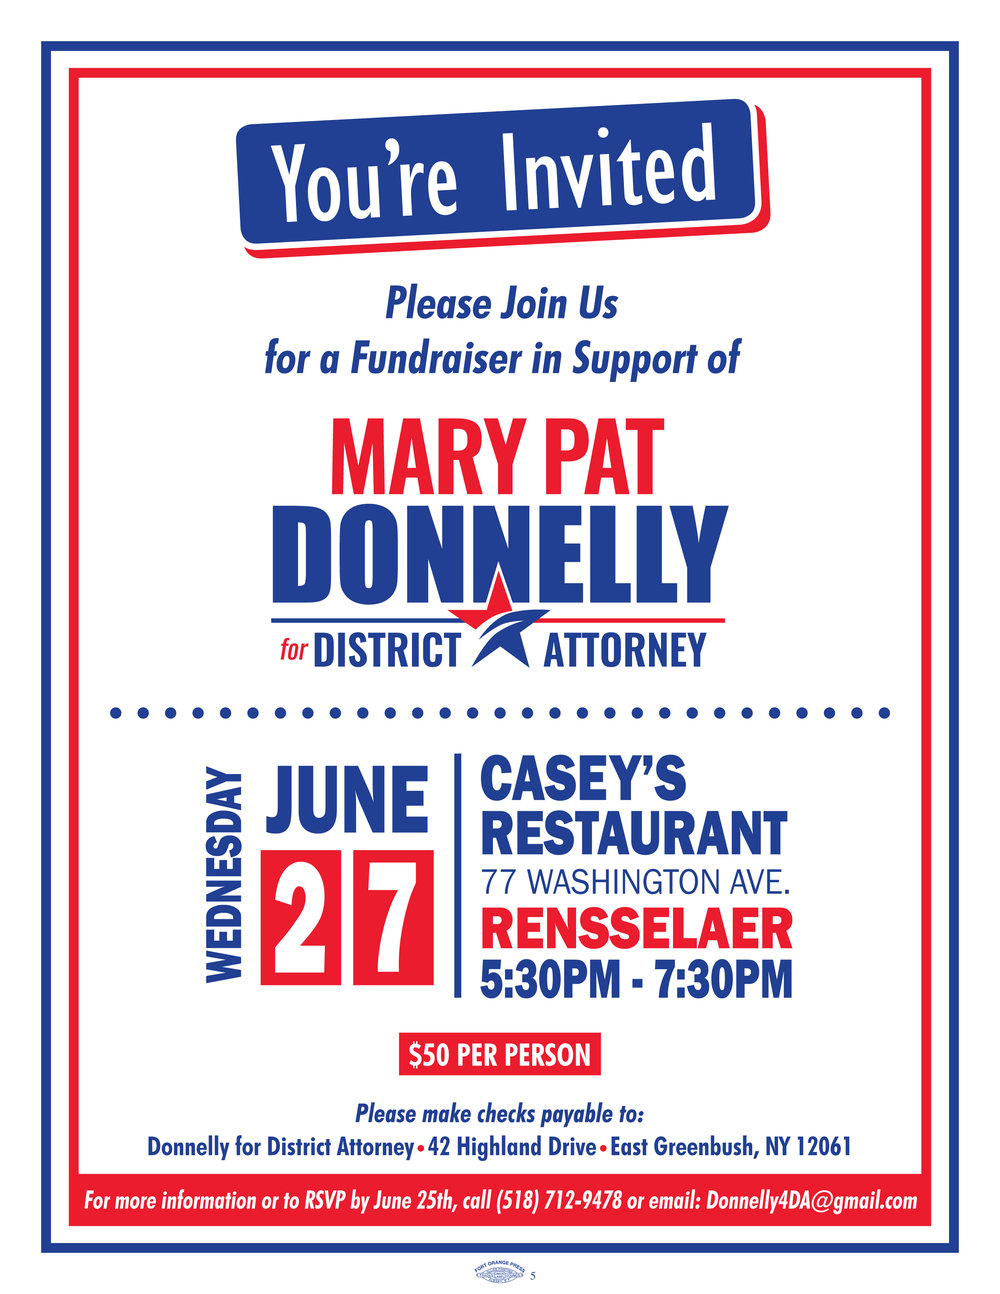 Mary Pat Donnelly for DA June 27 Fundraiser Invite.jpg